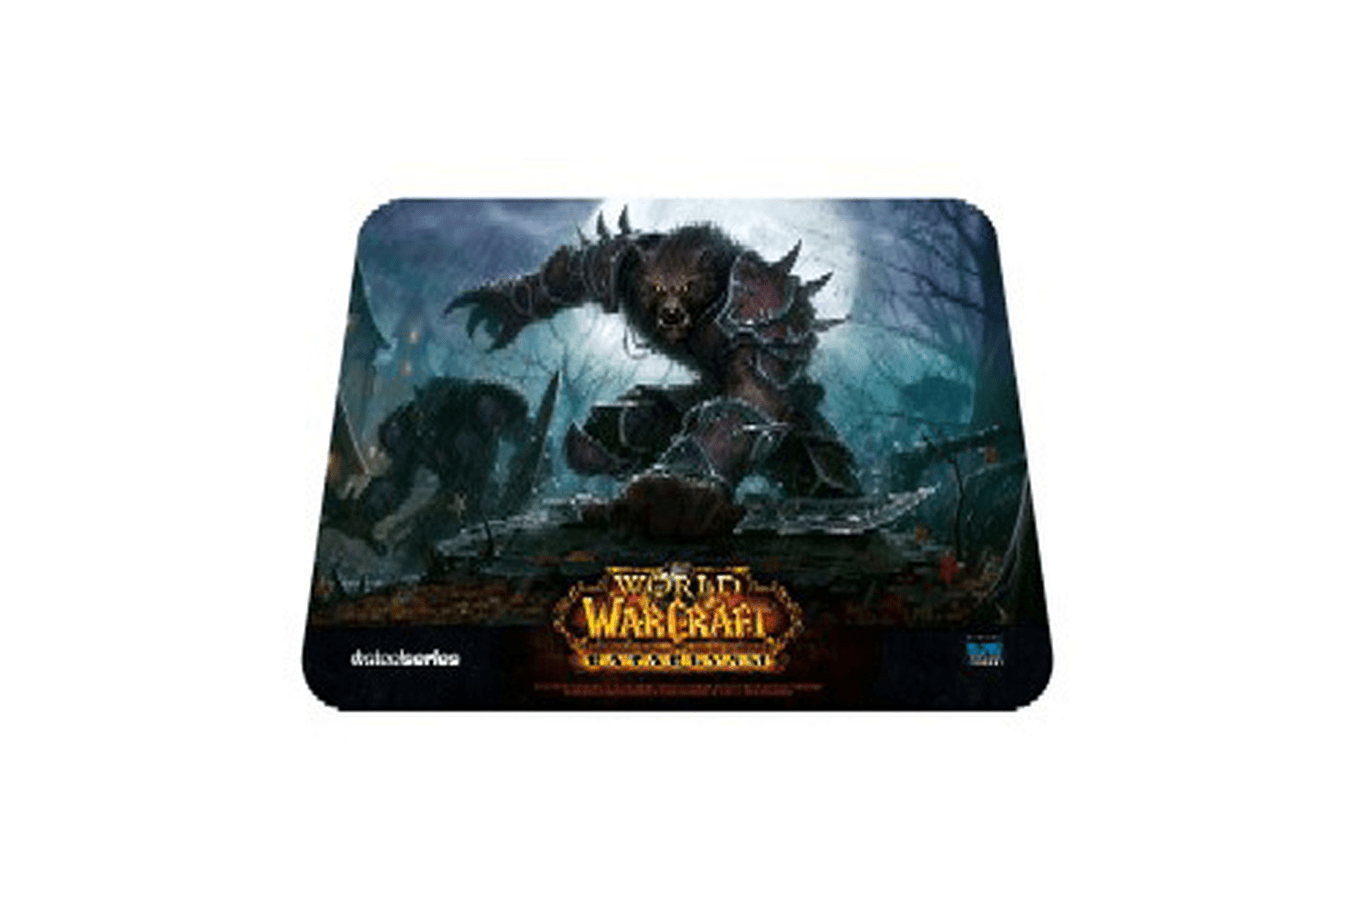 Tapis De Course Quelle Marque Choisir Tapis Gamer Steelseries Warcraft Cataclysm Bleu